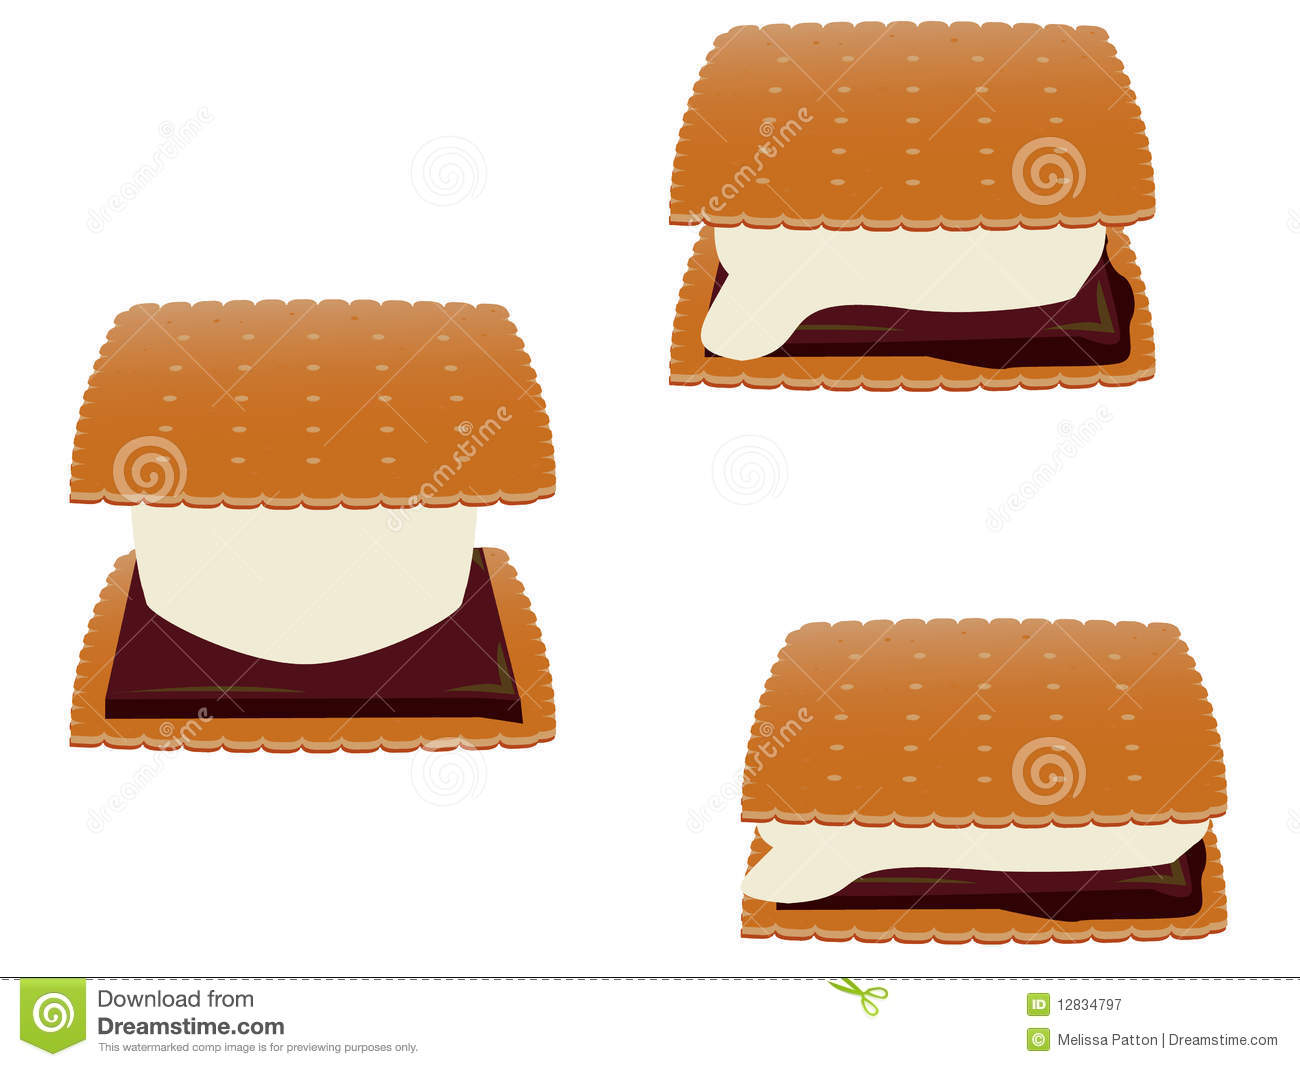 smores cartoons  illustrations   vector stock images 9 smores clipart free smores clip art jpeg